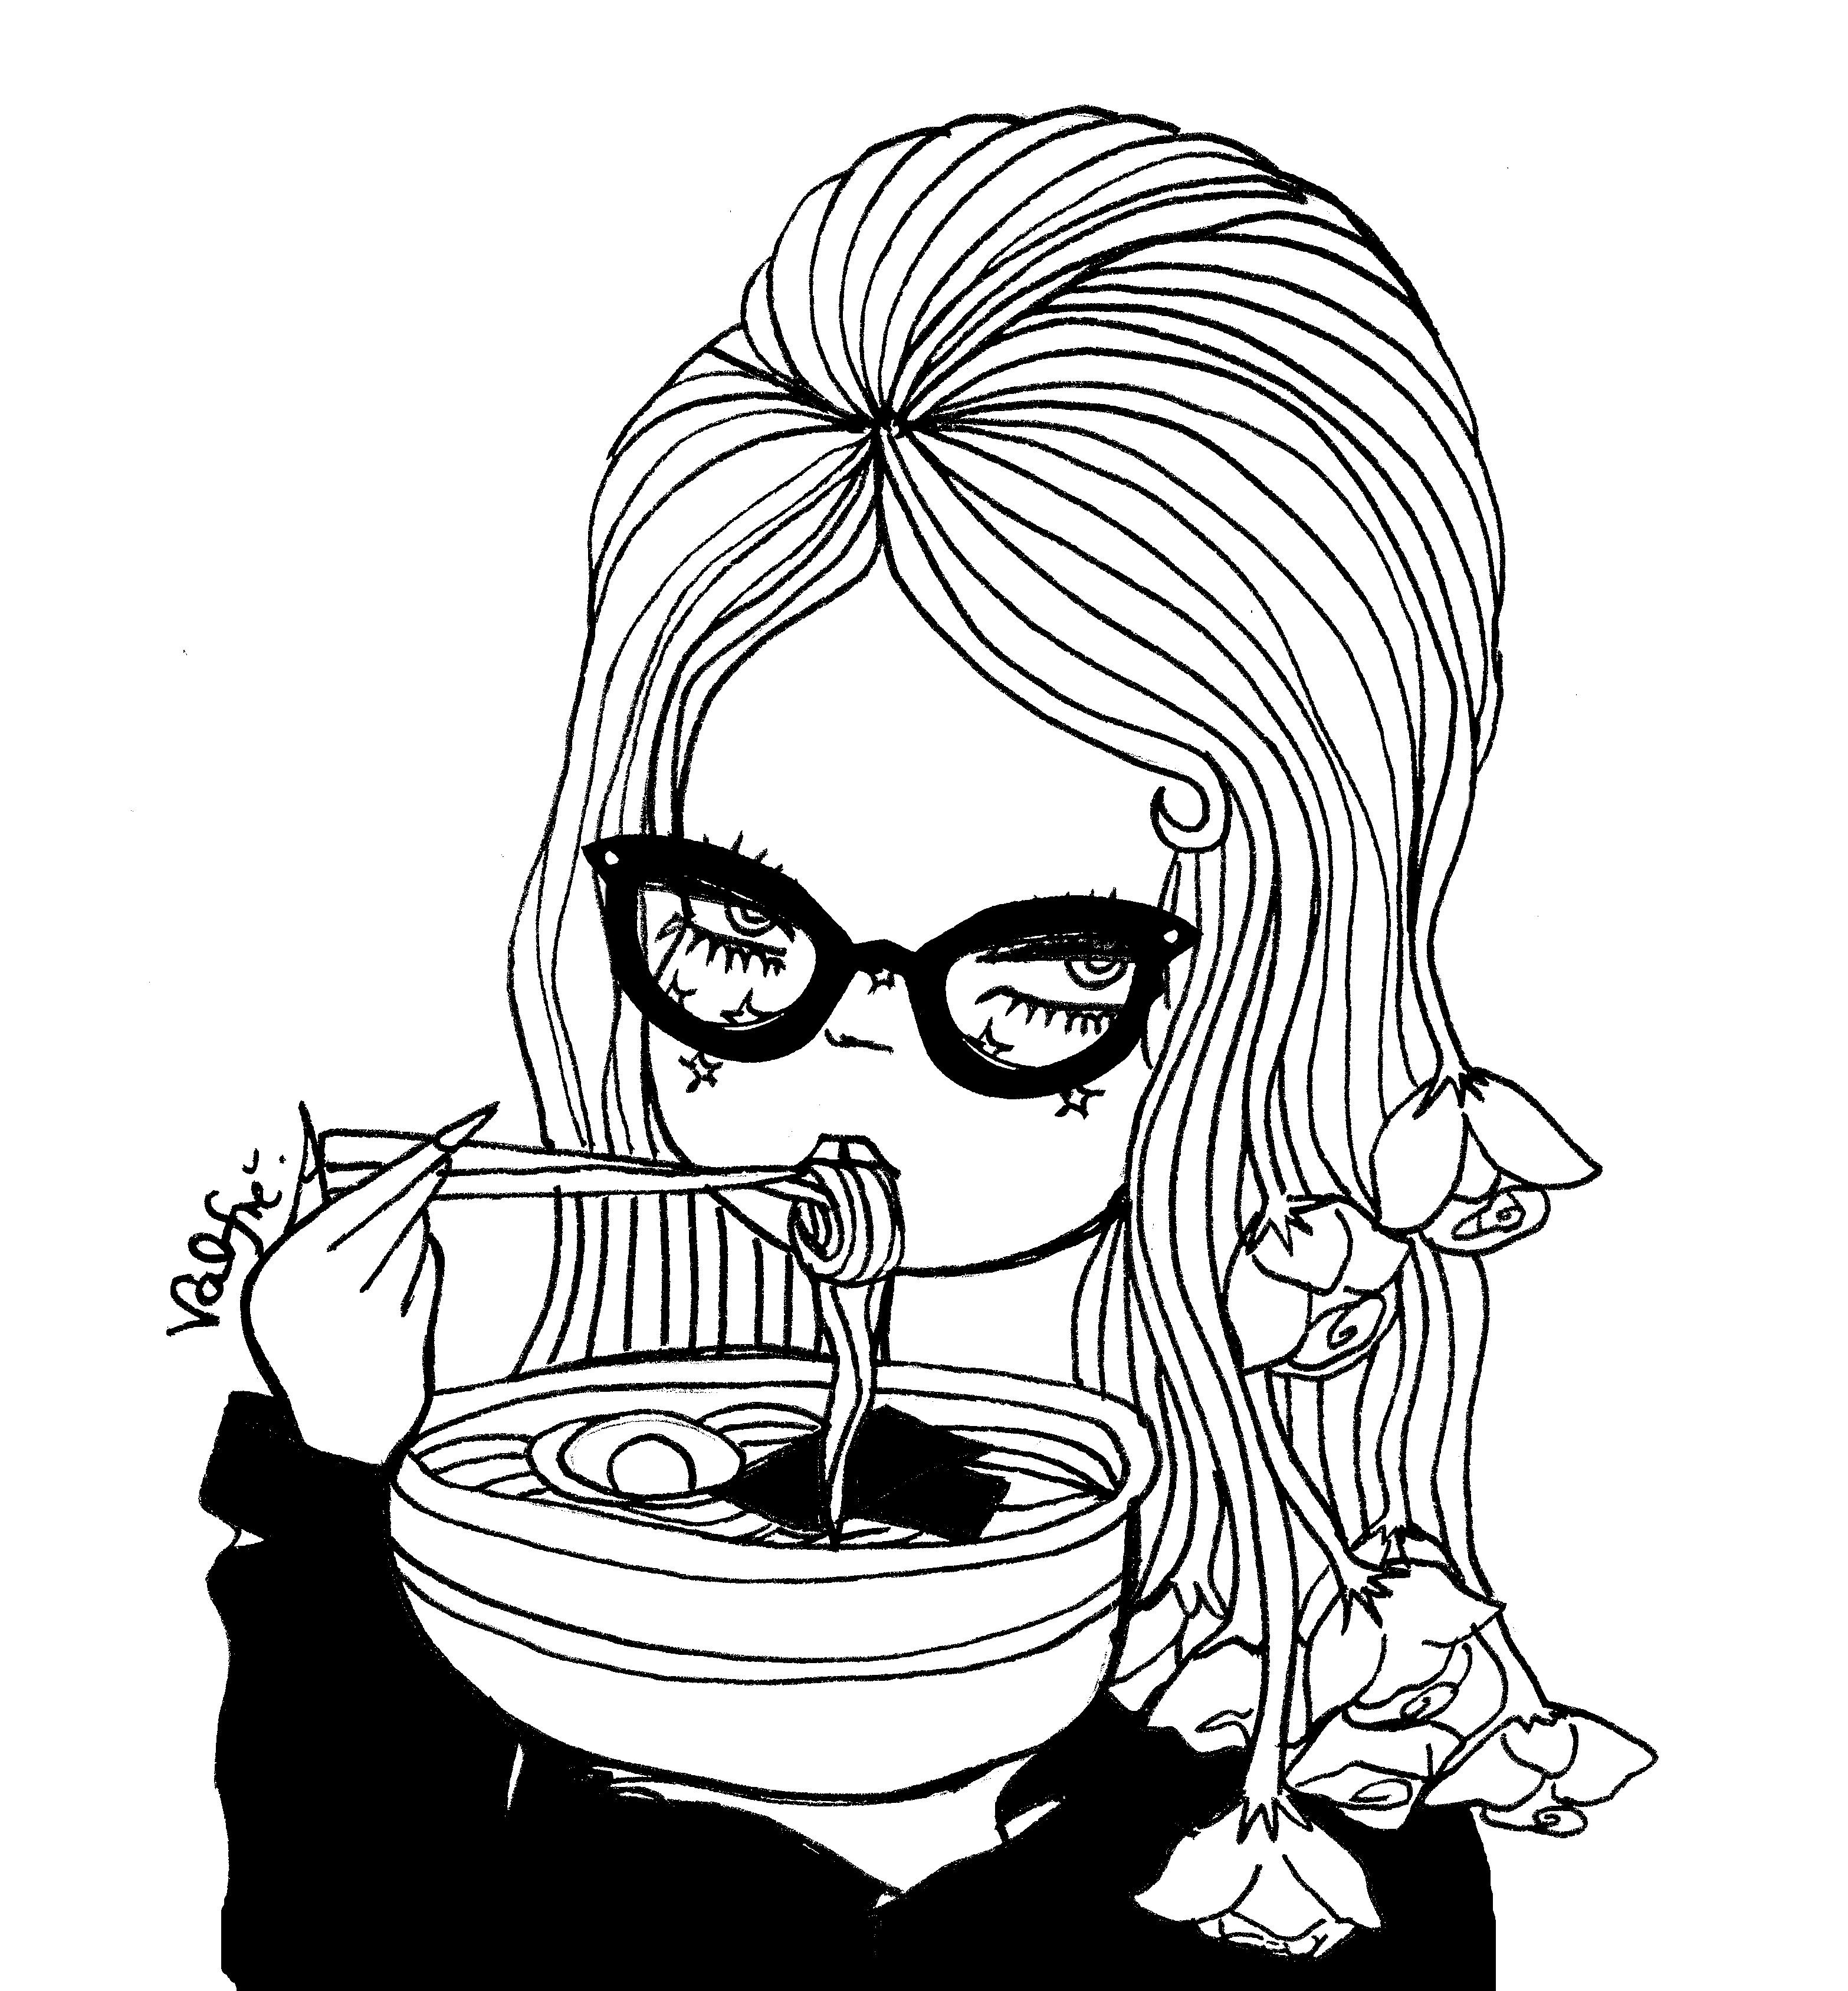 Every Week We Will Be Posting New Valfre Coloring Pages On